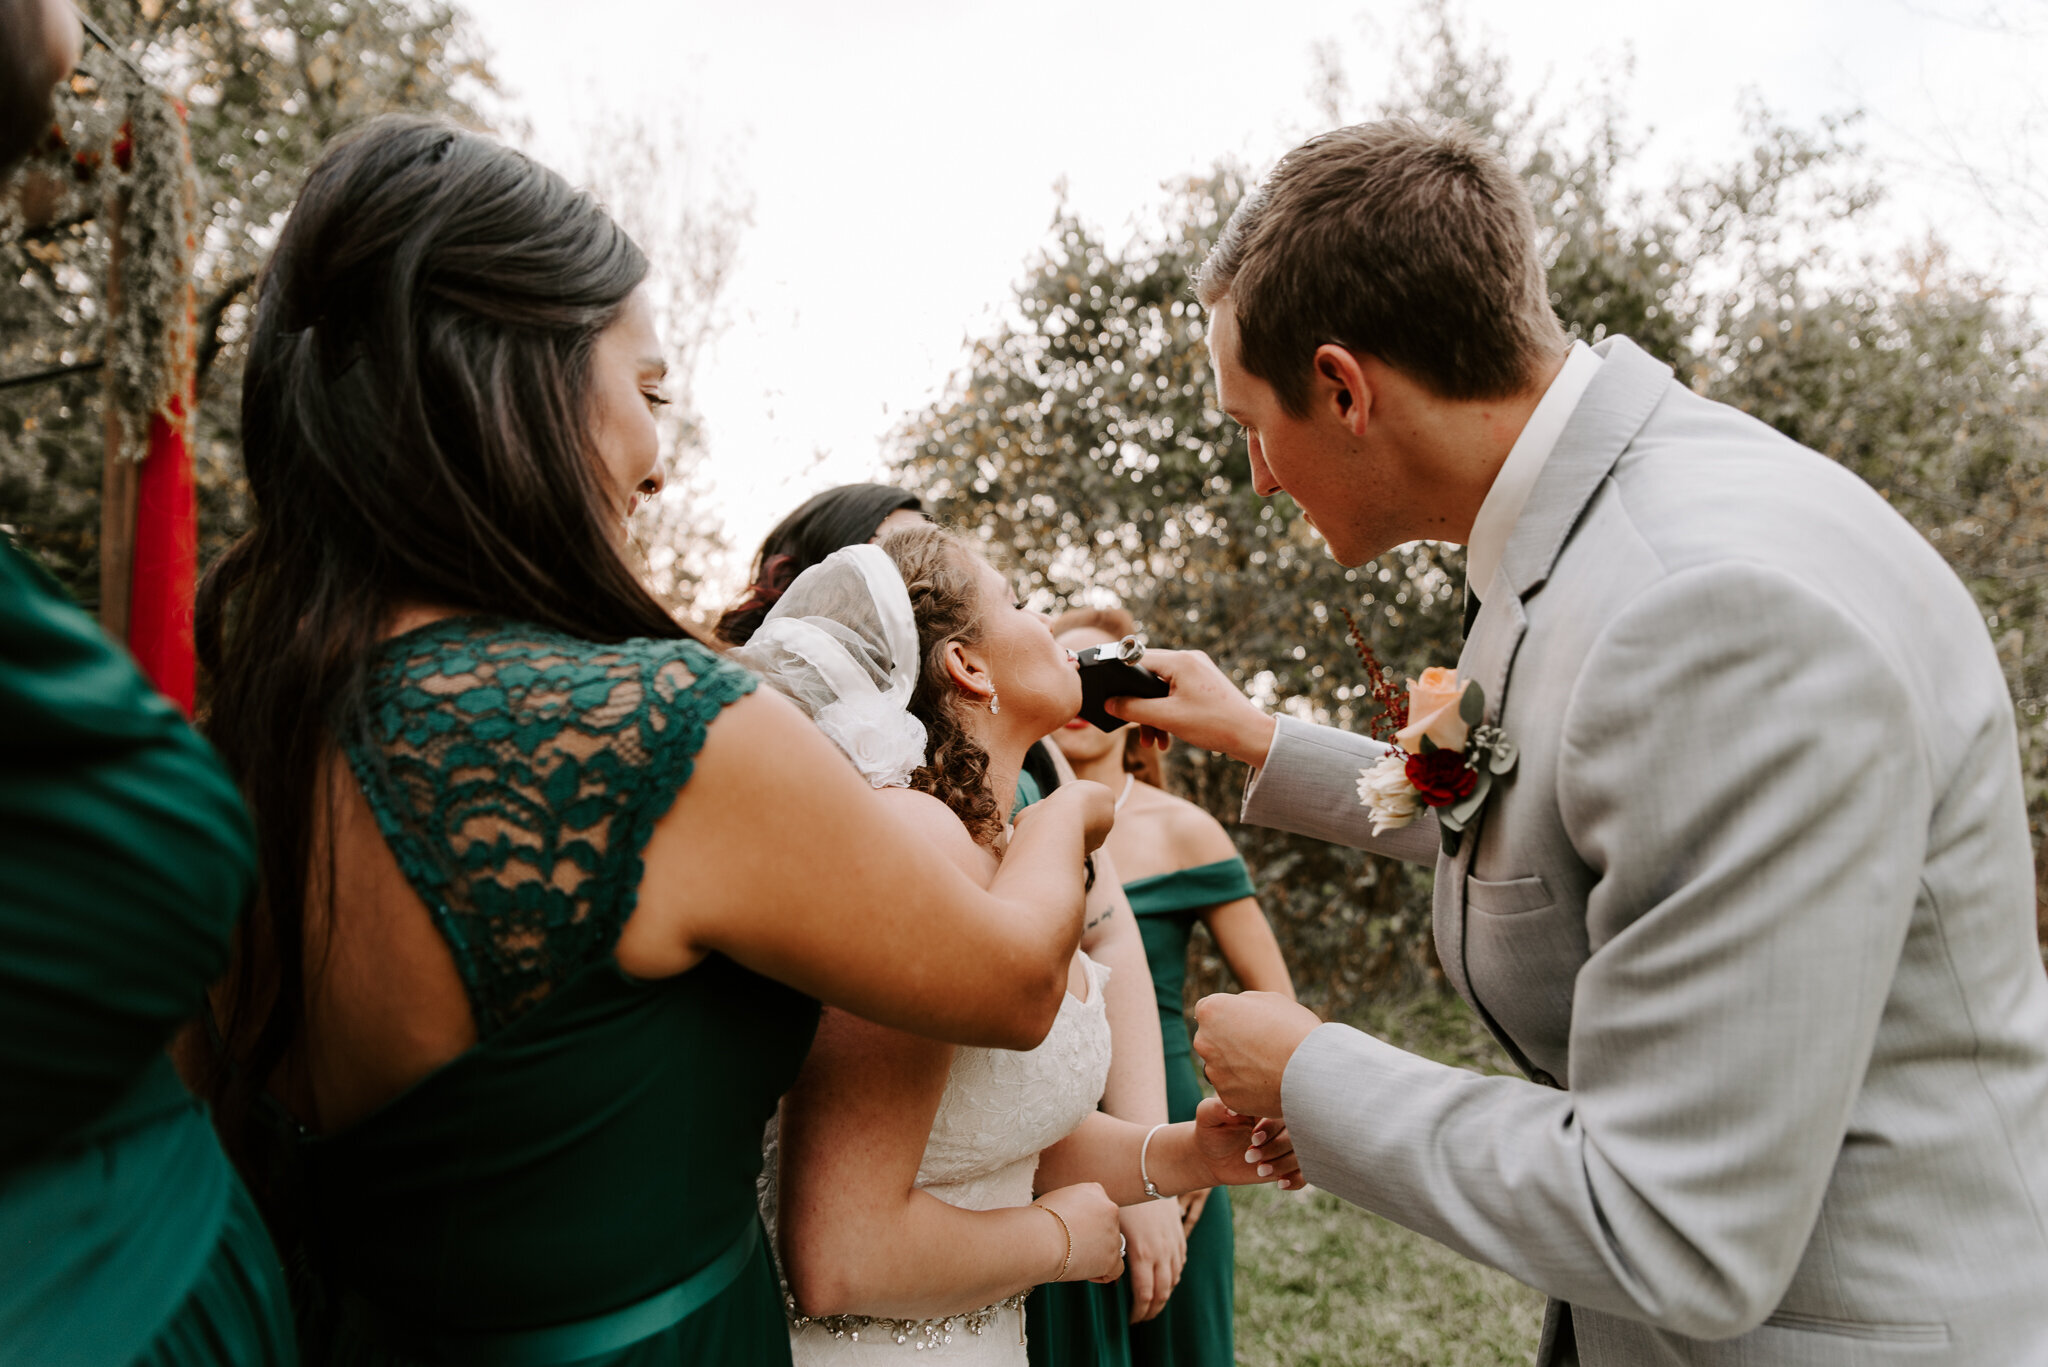 Wichita wedding photographer +wichita ks + colorado wedding photographer + elopements + kansas.jpg5